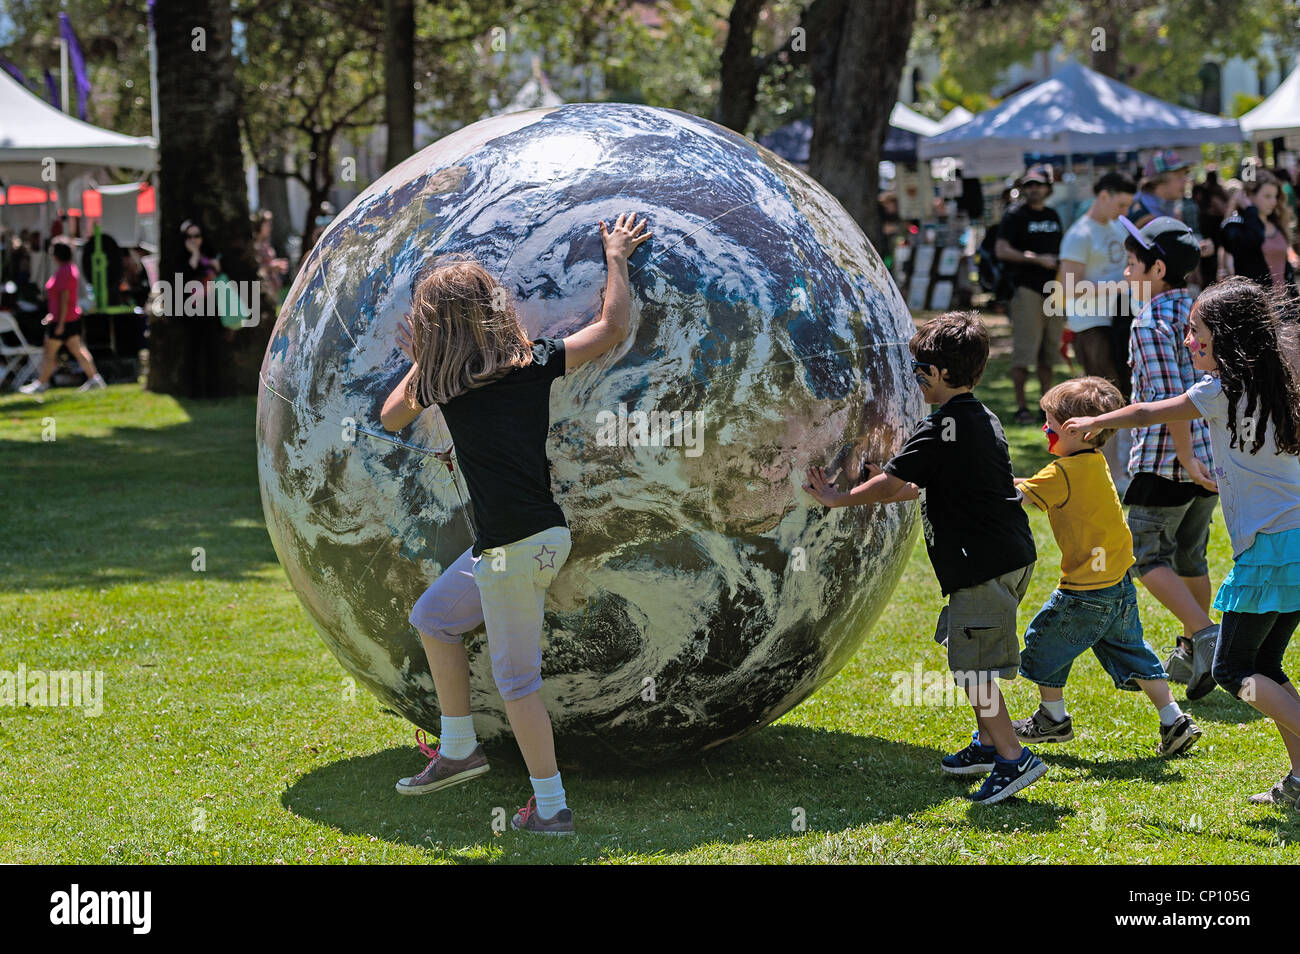 Children roll a giant 'planet Earth' inflatable ball at the annual  'Earth Day' happening at Alameda - Stock Image